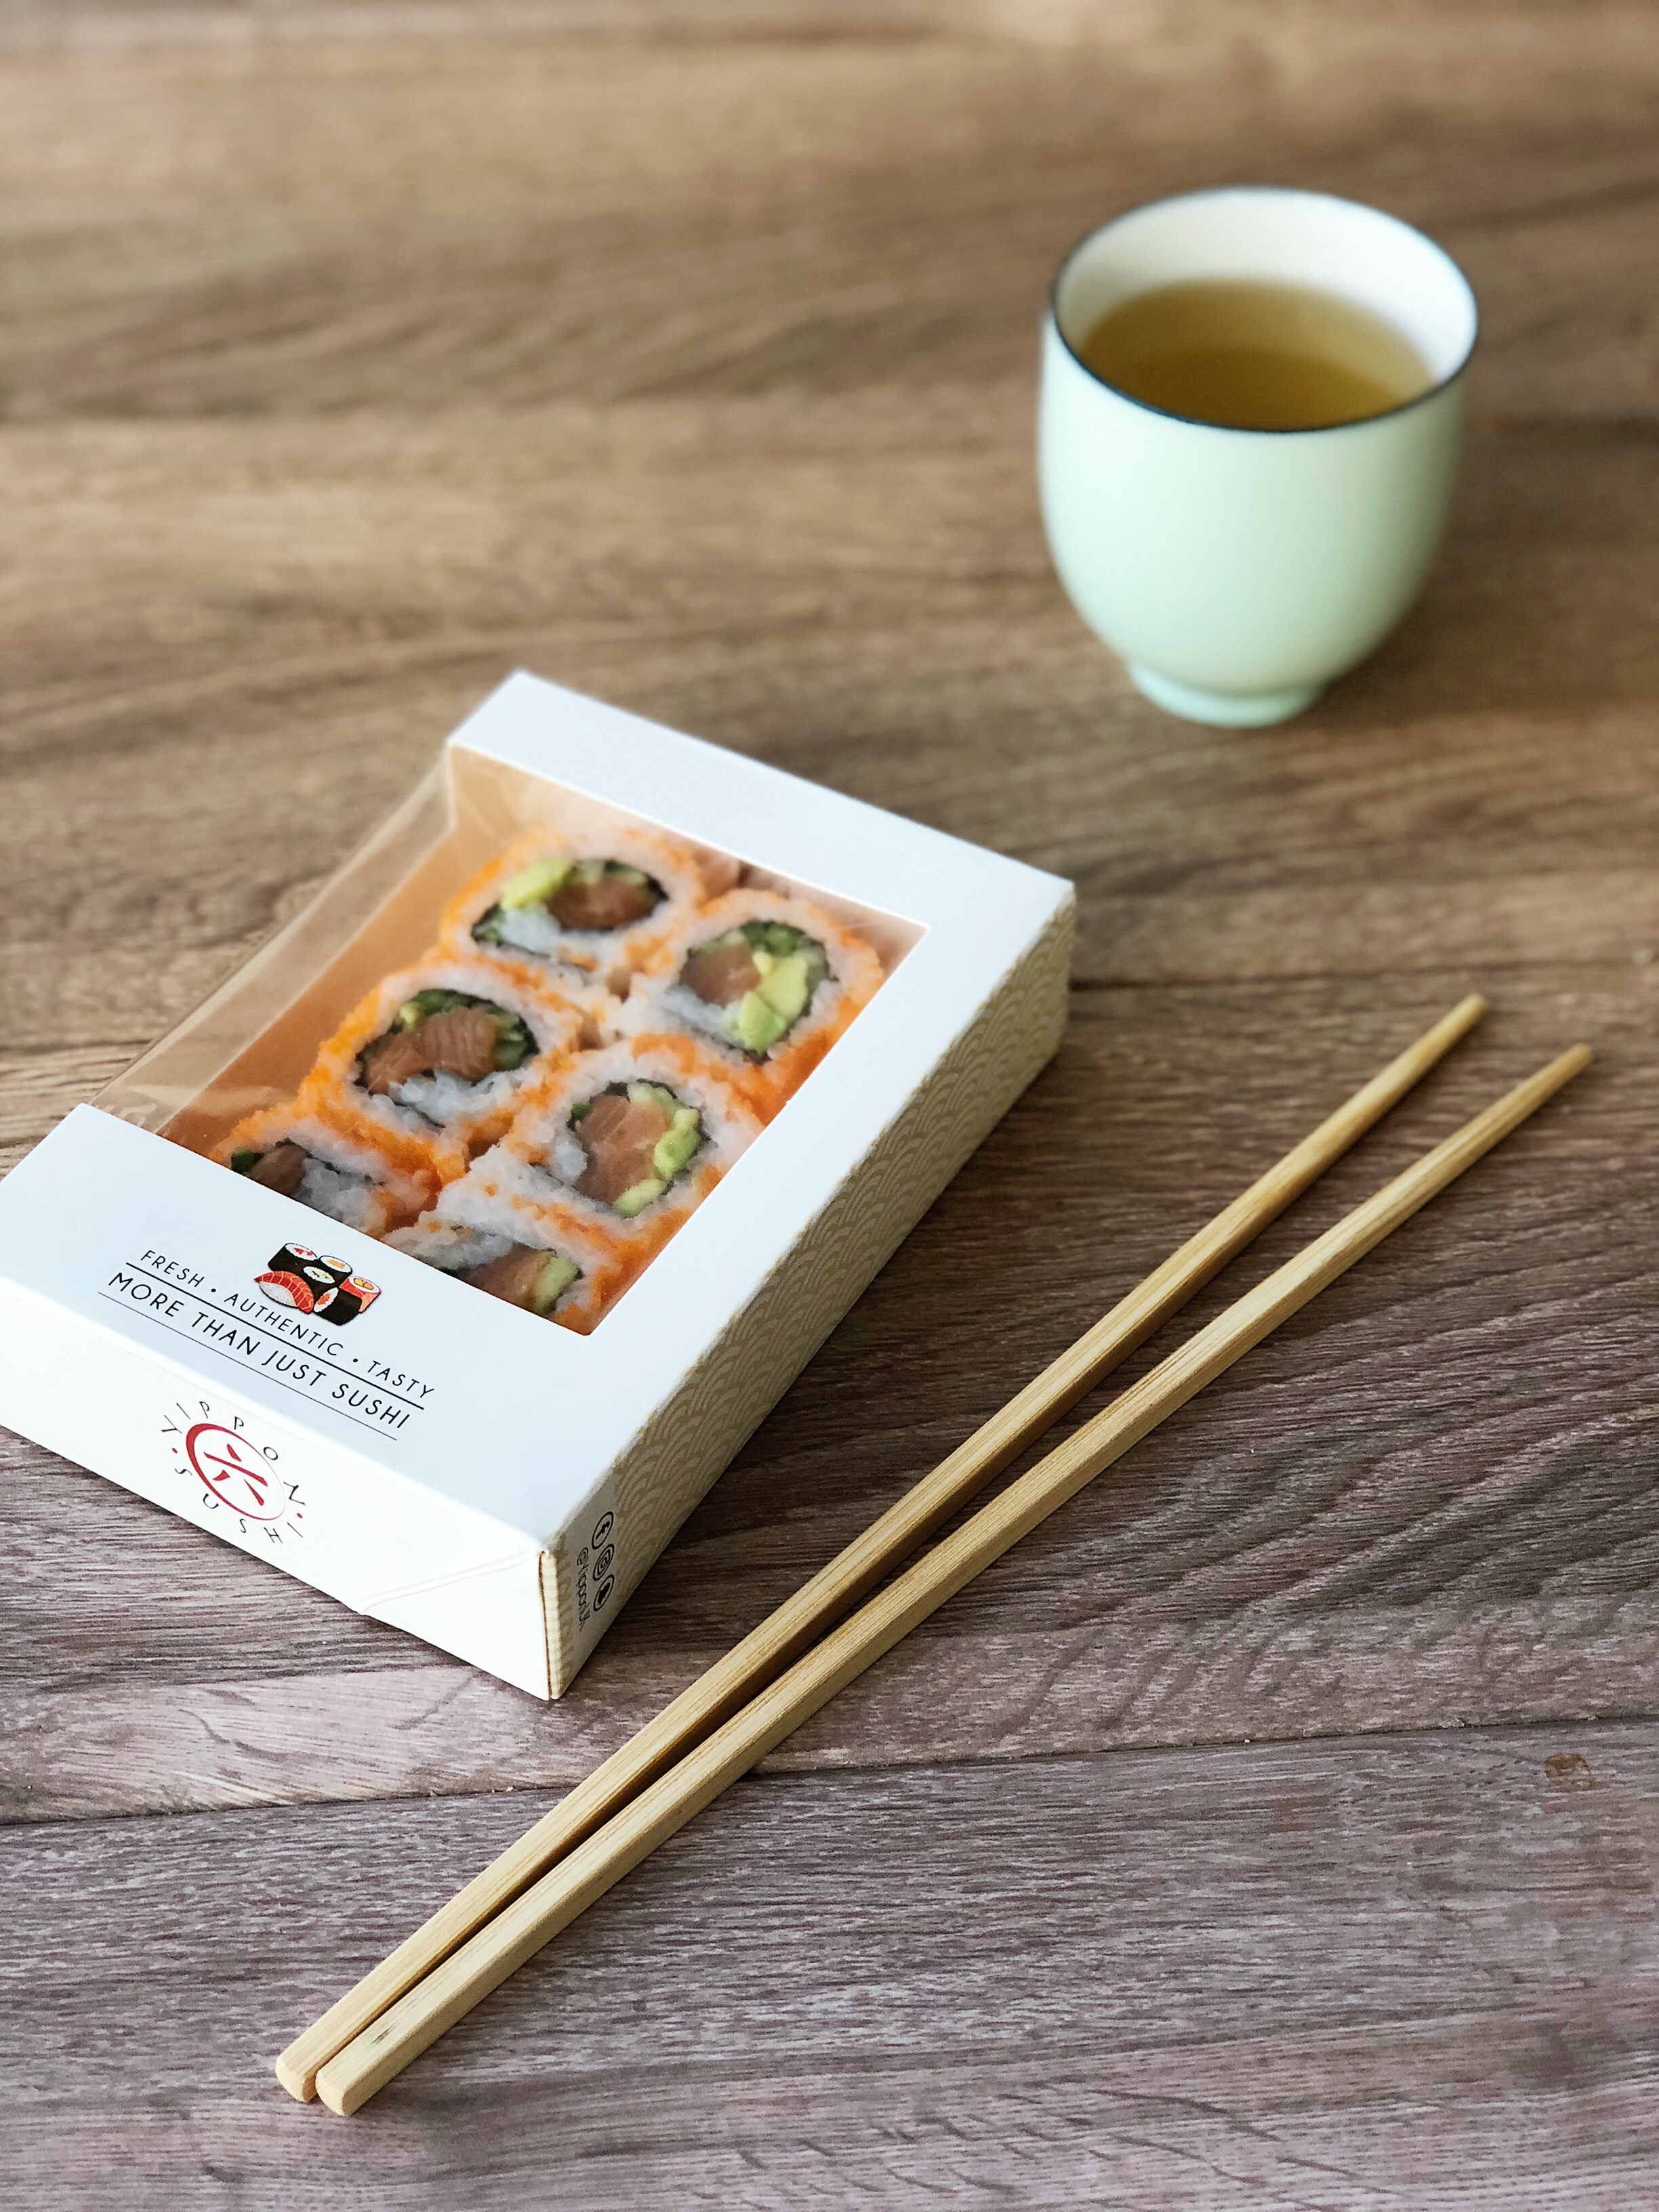 SUSHI -  Our sushi are freshly prepared in our kitchen every day and pre-packaged for your convenience. We provide a selection of sushi boxes and individually wrapped sushi, including vegetarian sushi options.